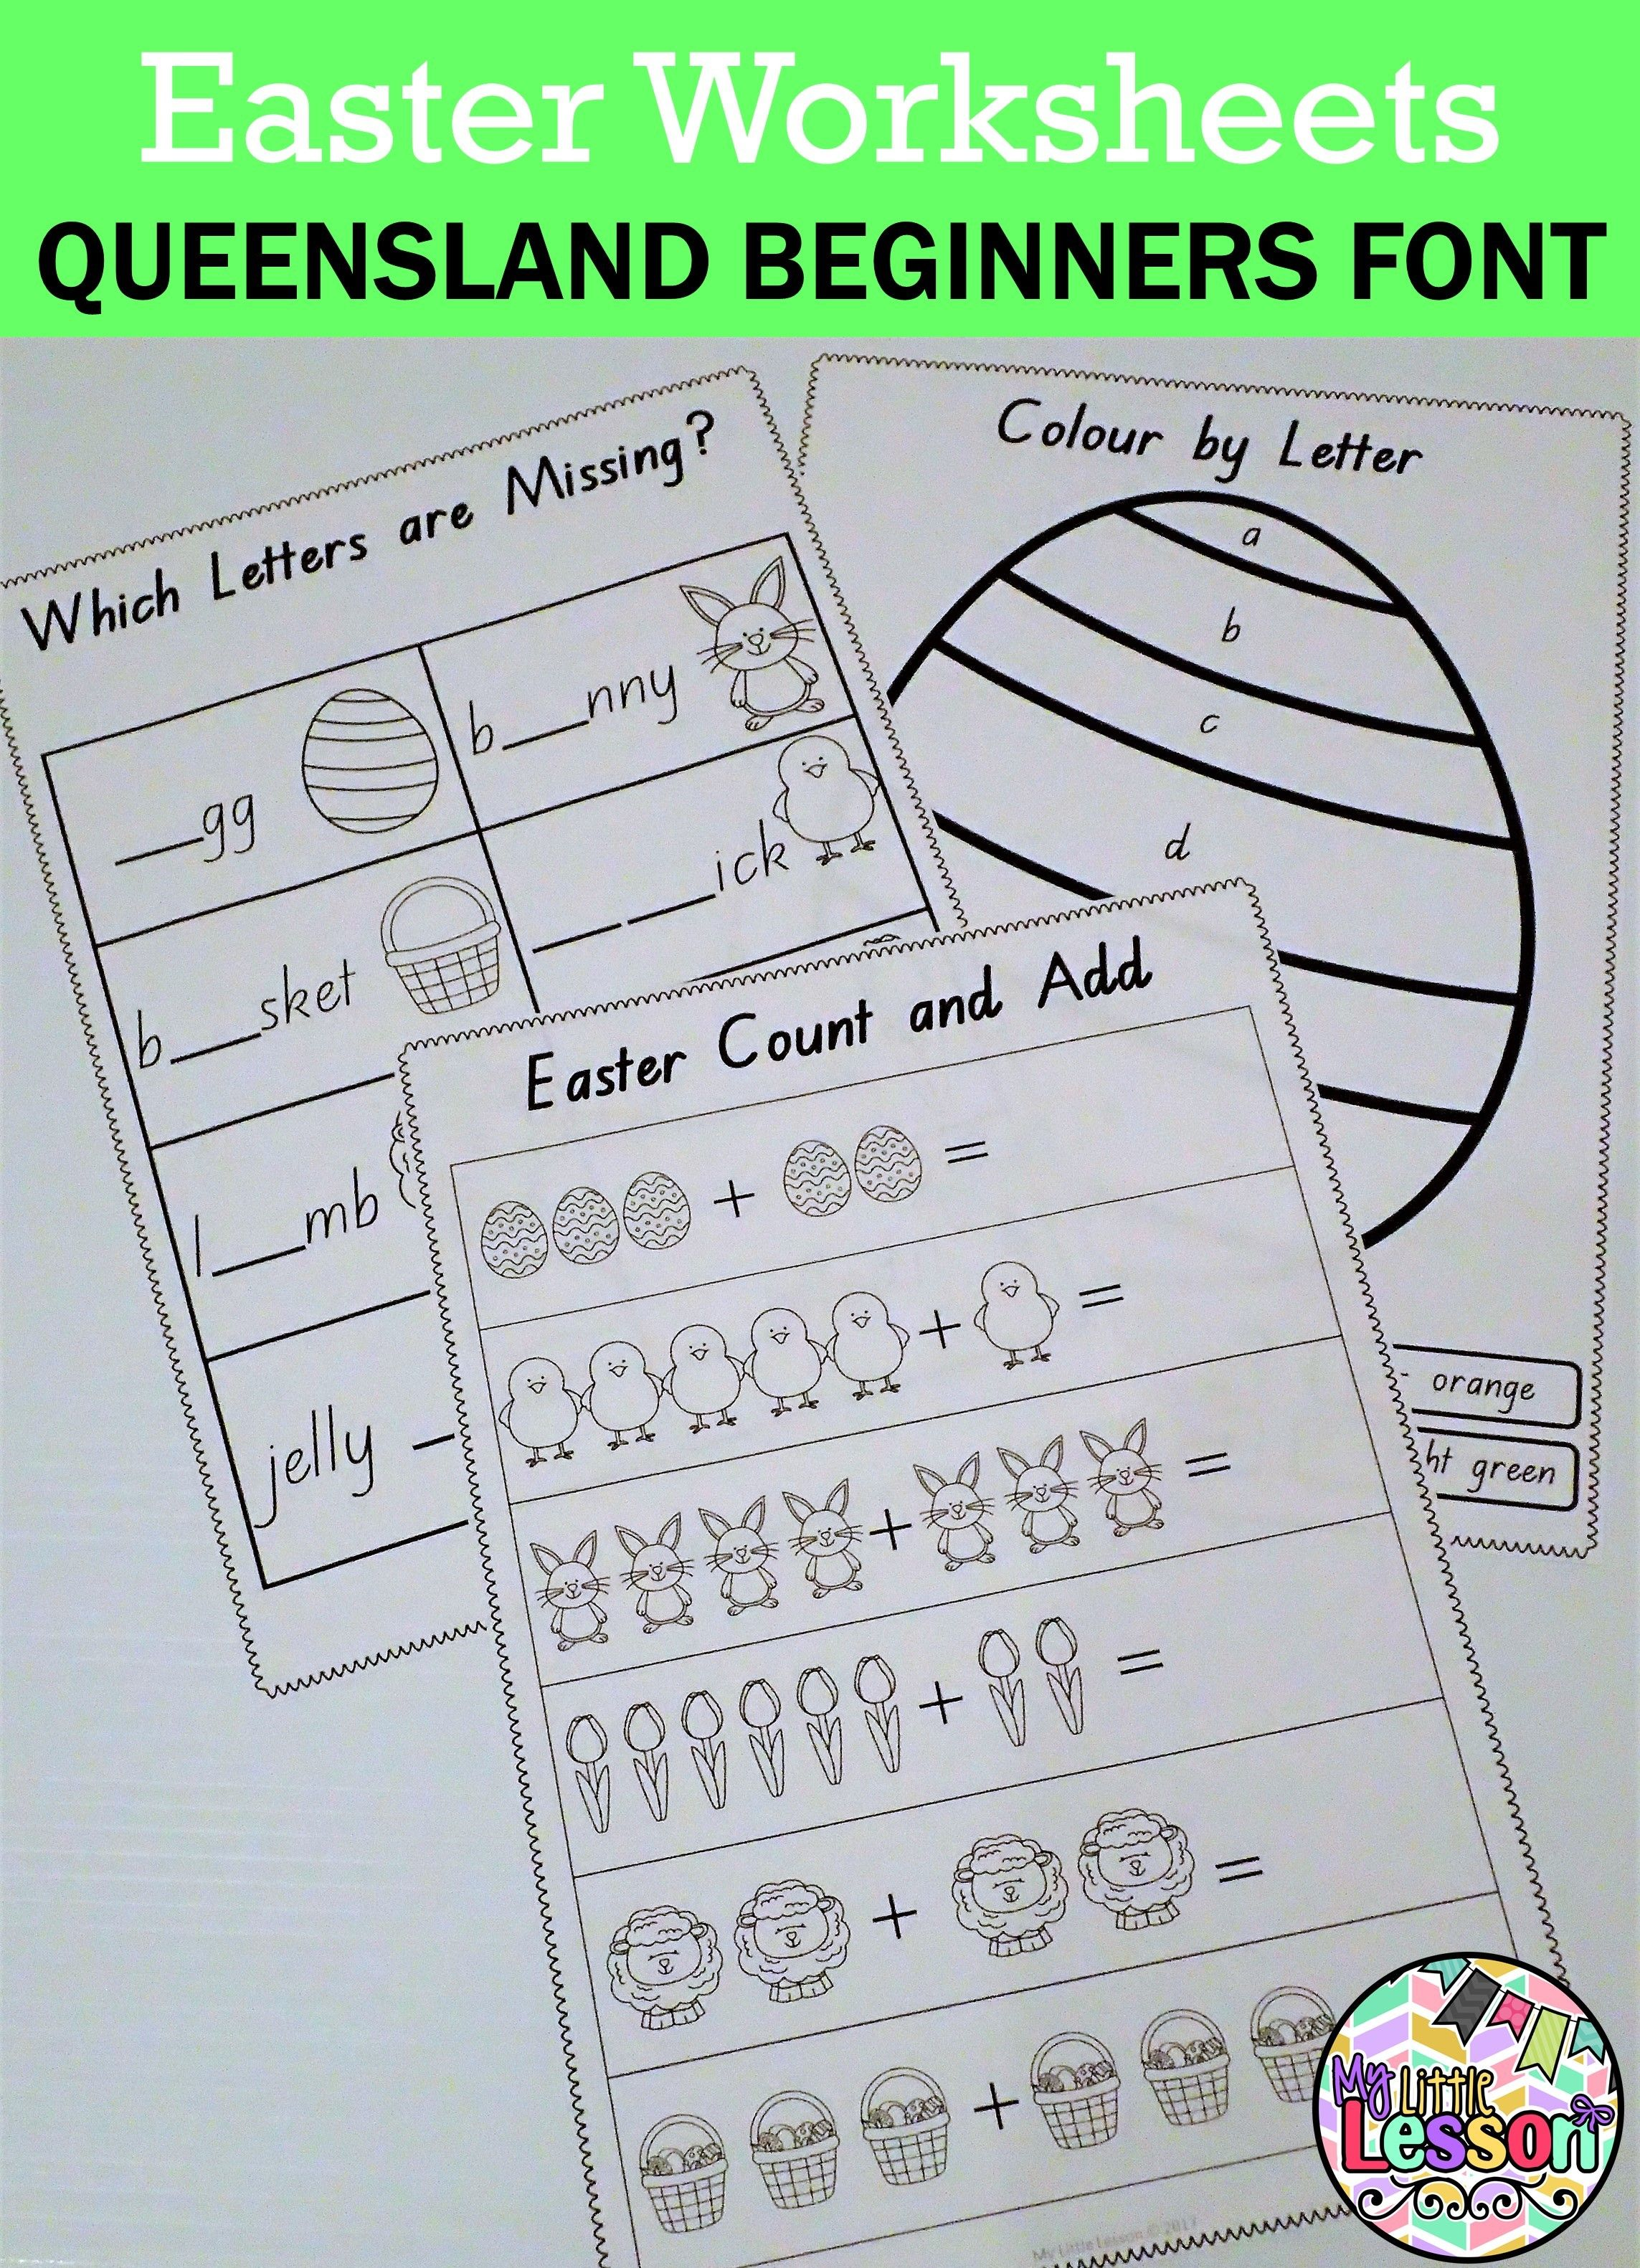 Easter Worksheets Qld Beginners Font